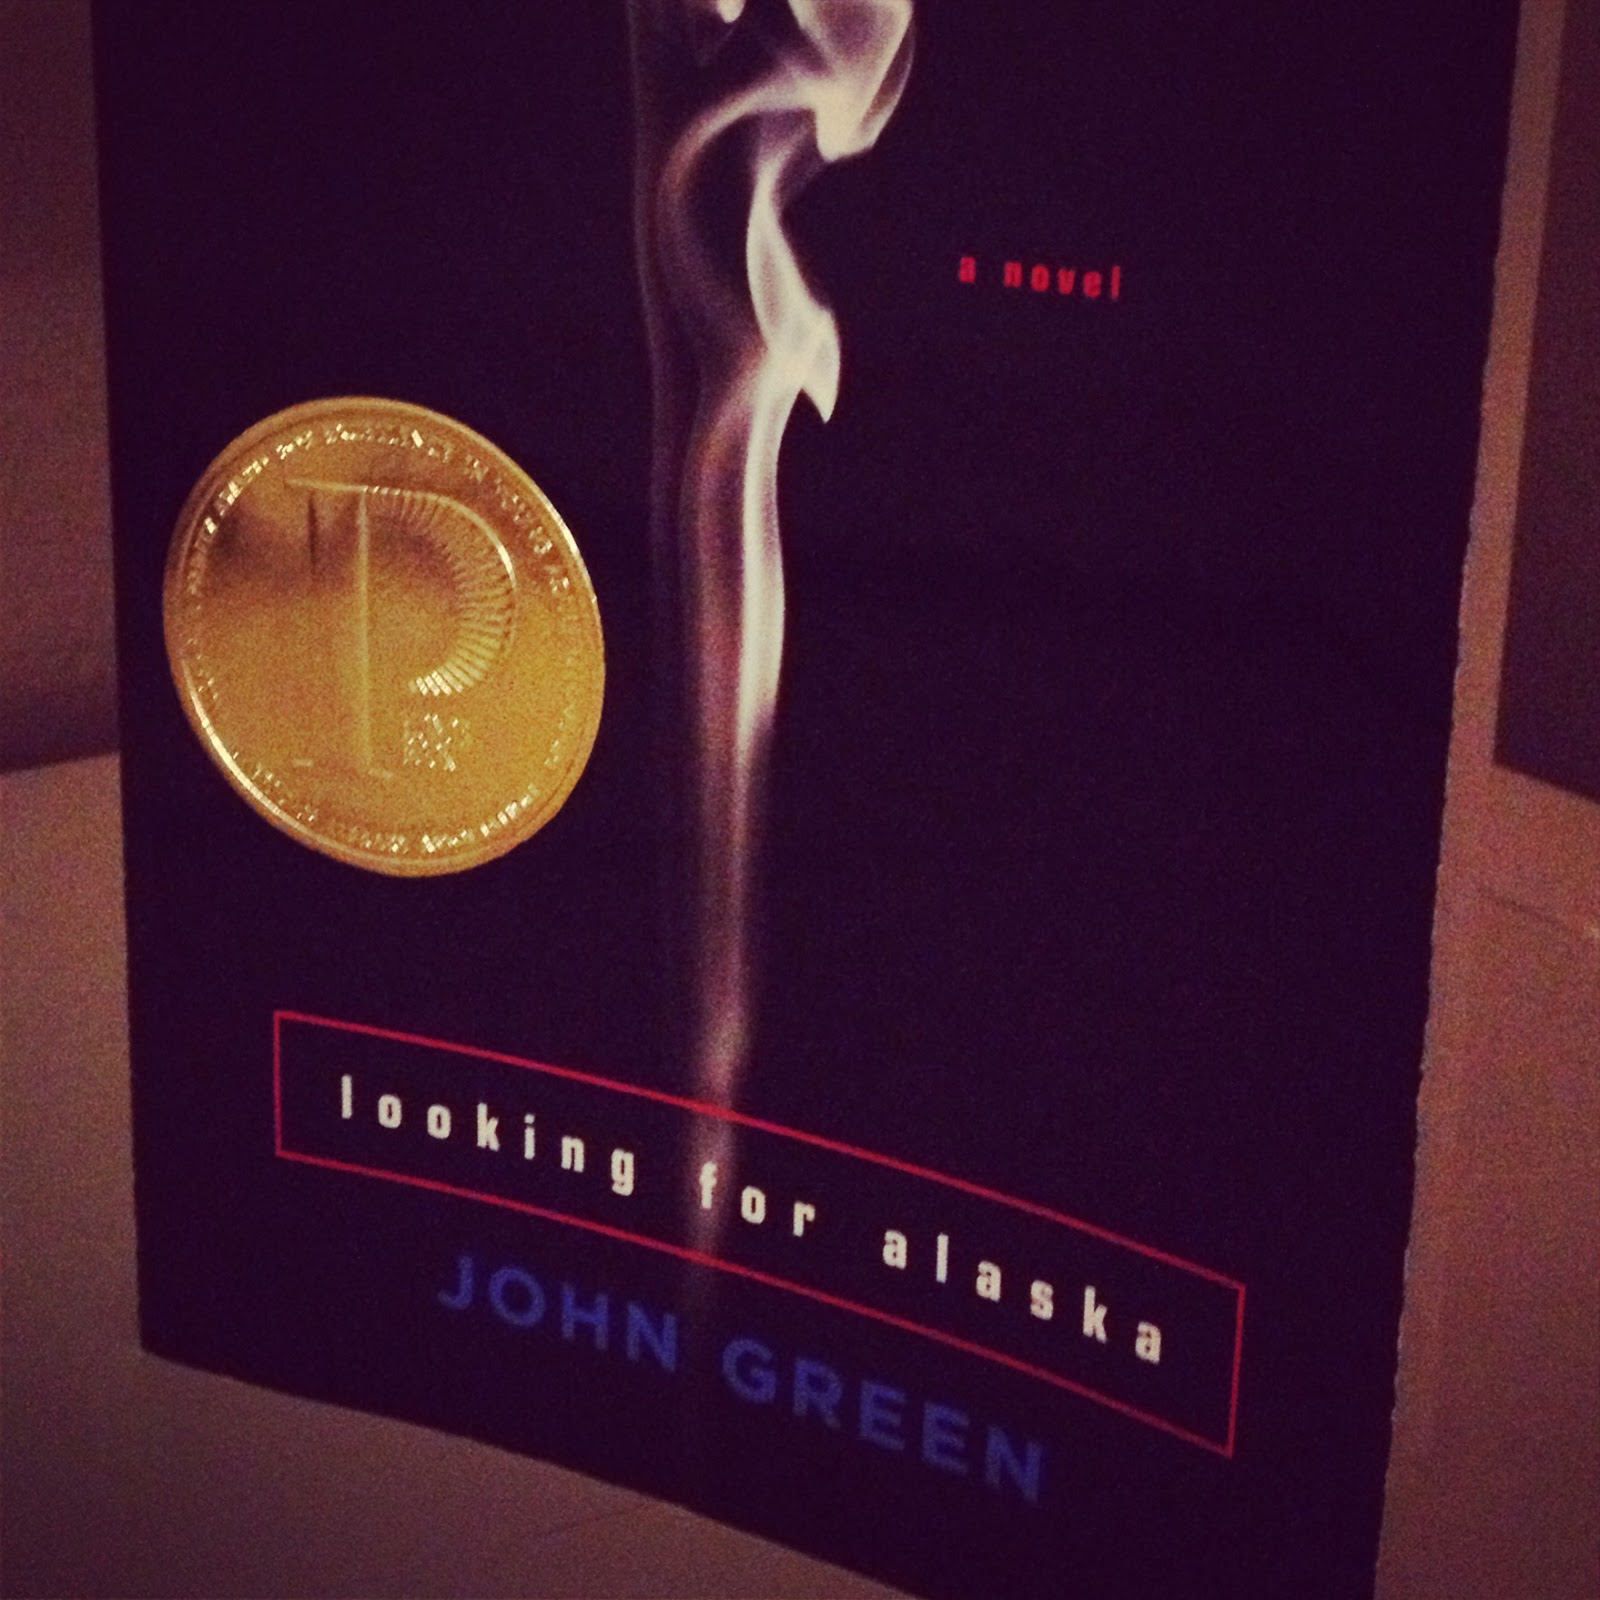 John Green's novel, Looking for Alaska